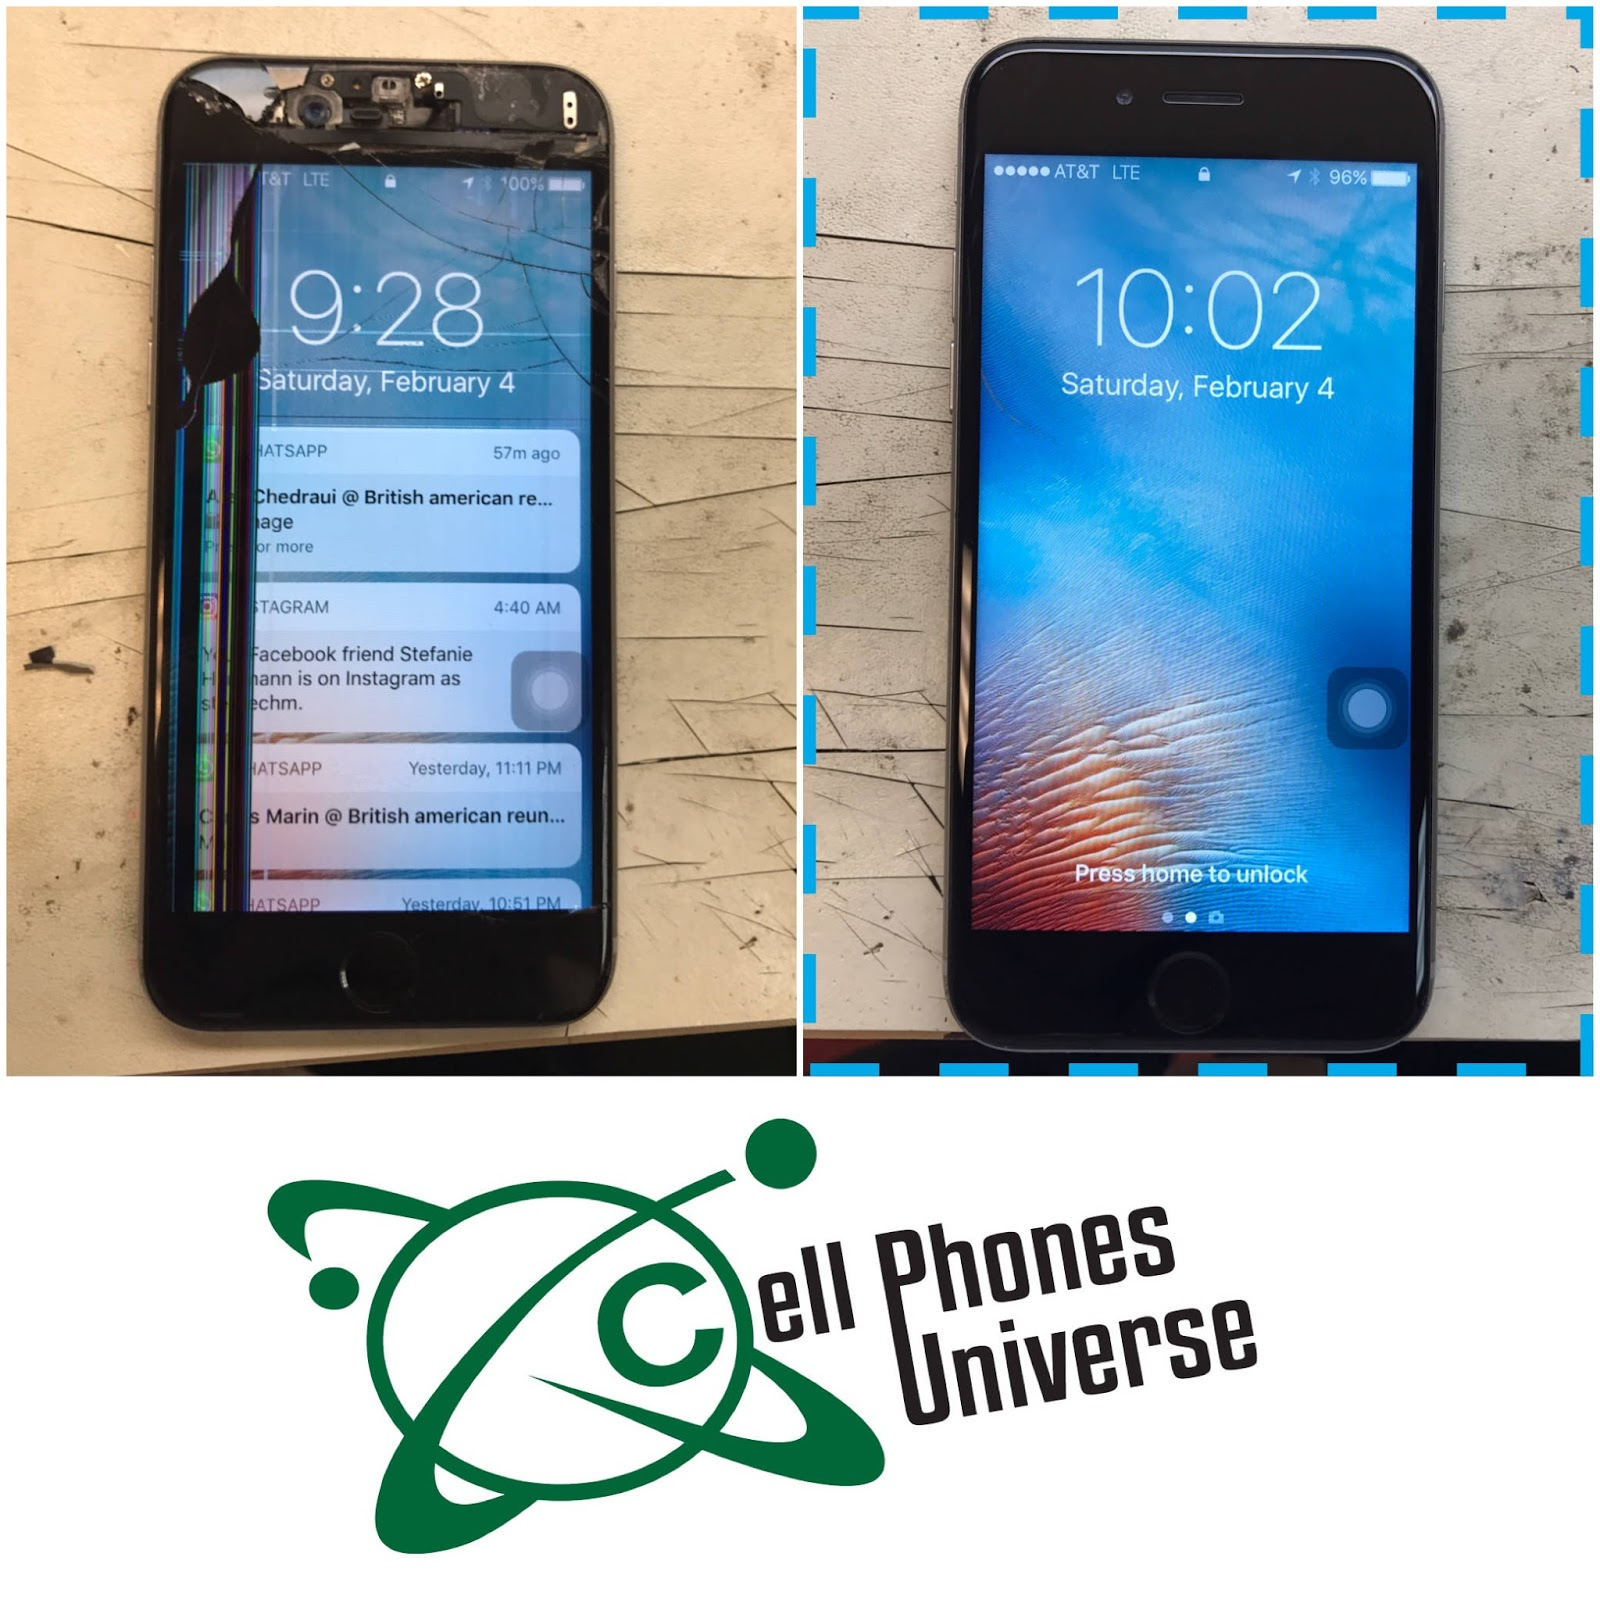 IPHONE 6 AND 6 PLUS LCD REPLACEMENT IN HIALEAH | Cell Phone